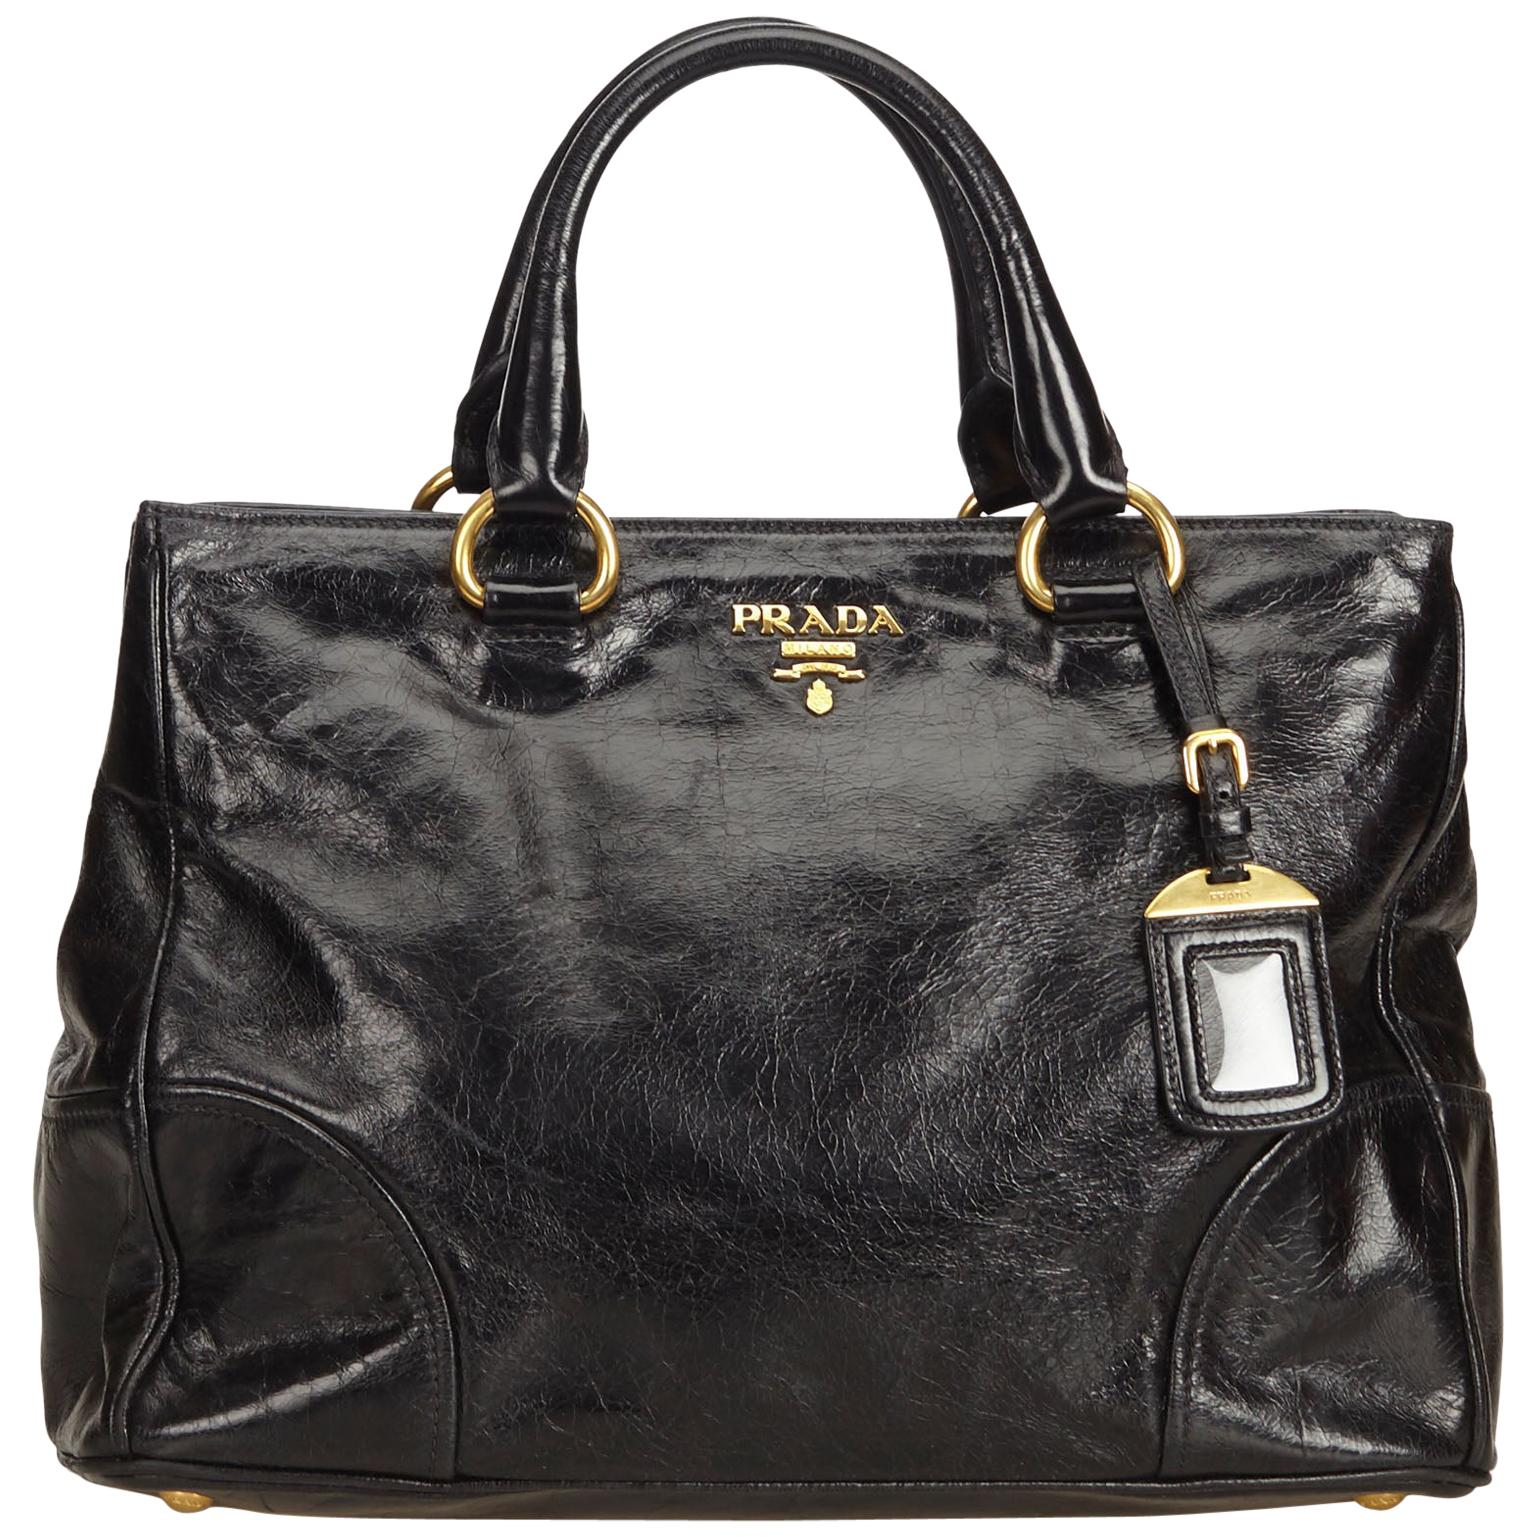 c368b03864 Vintage Prada Handbags and Purses - 1,347 For Sale at 1stdibs